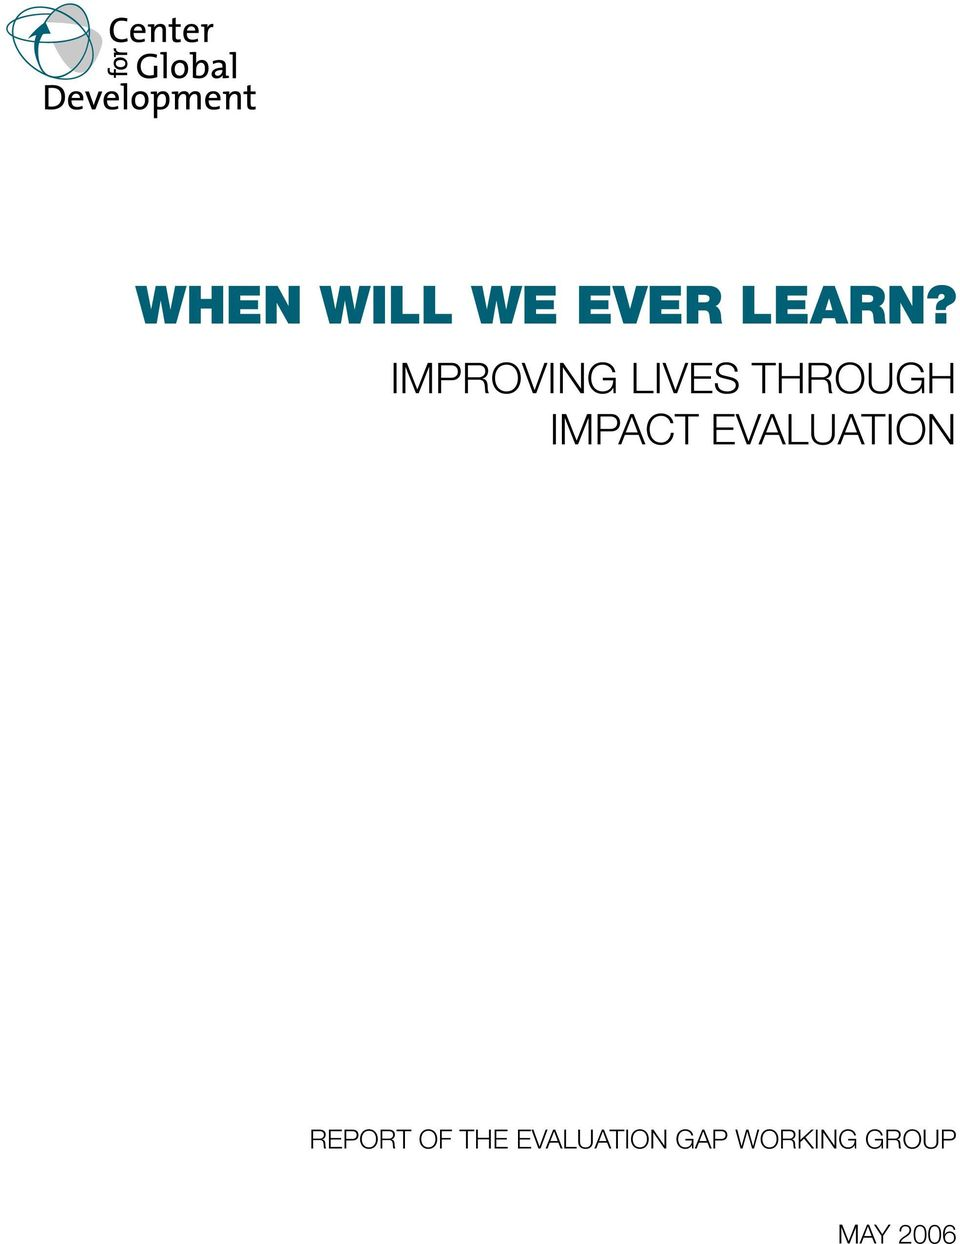 Impact Evaluation Report of